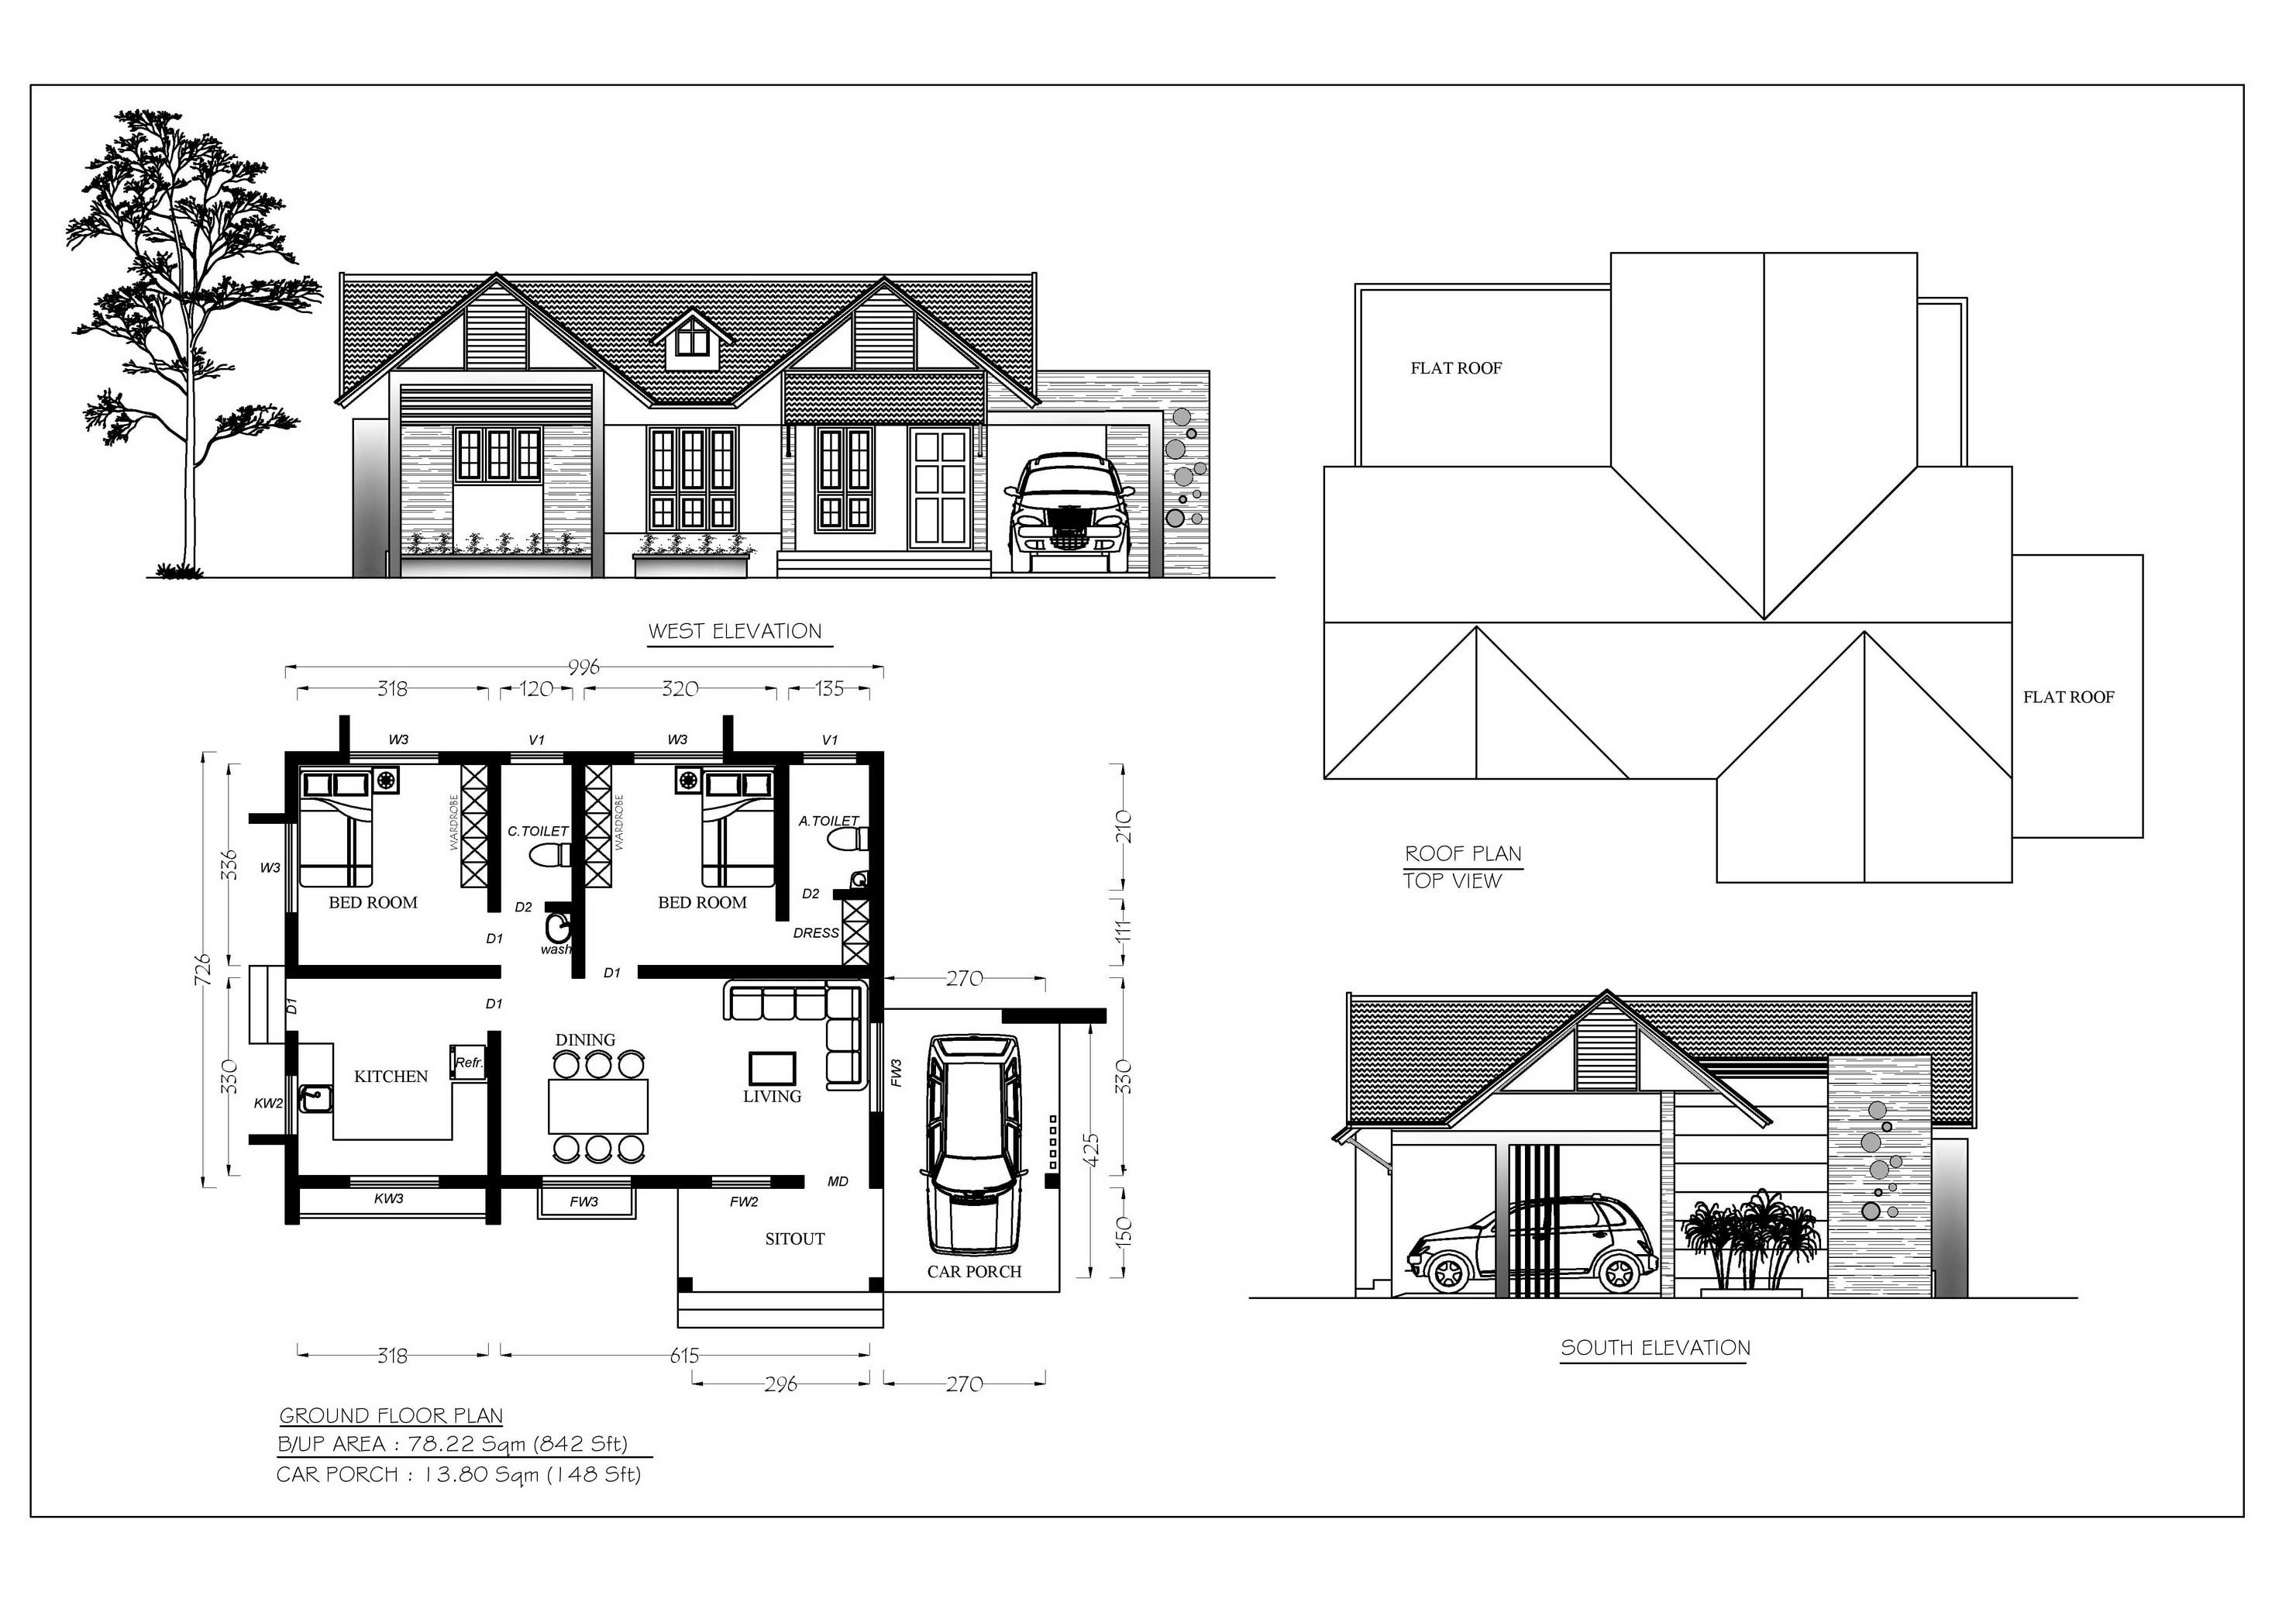 Draw Building Plan Cross Section And Elevation By Ambili Pk Fiverr